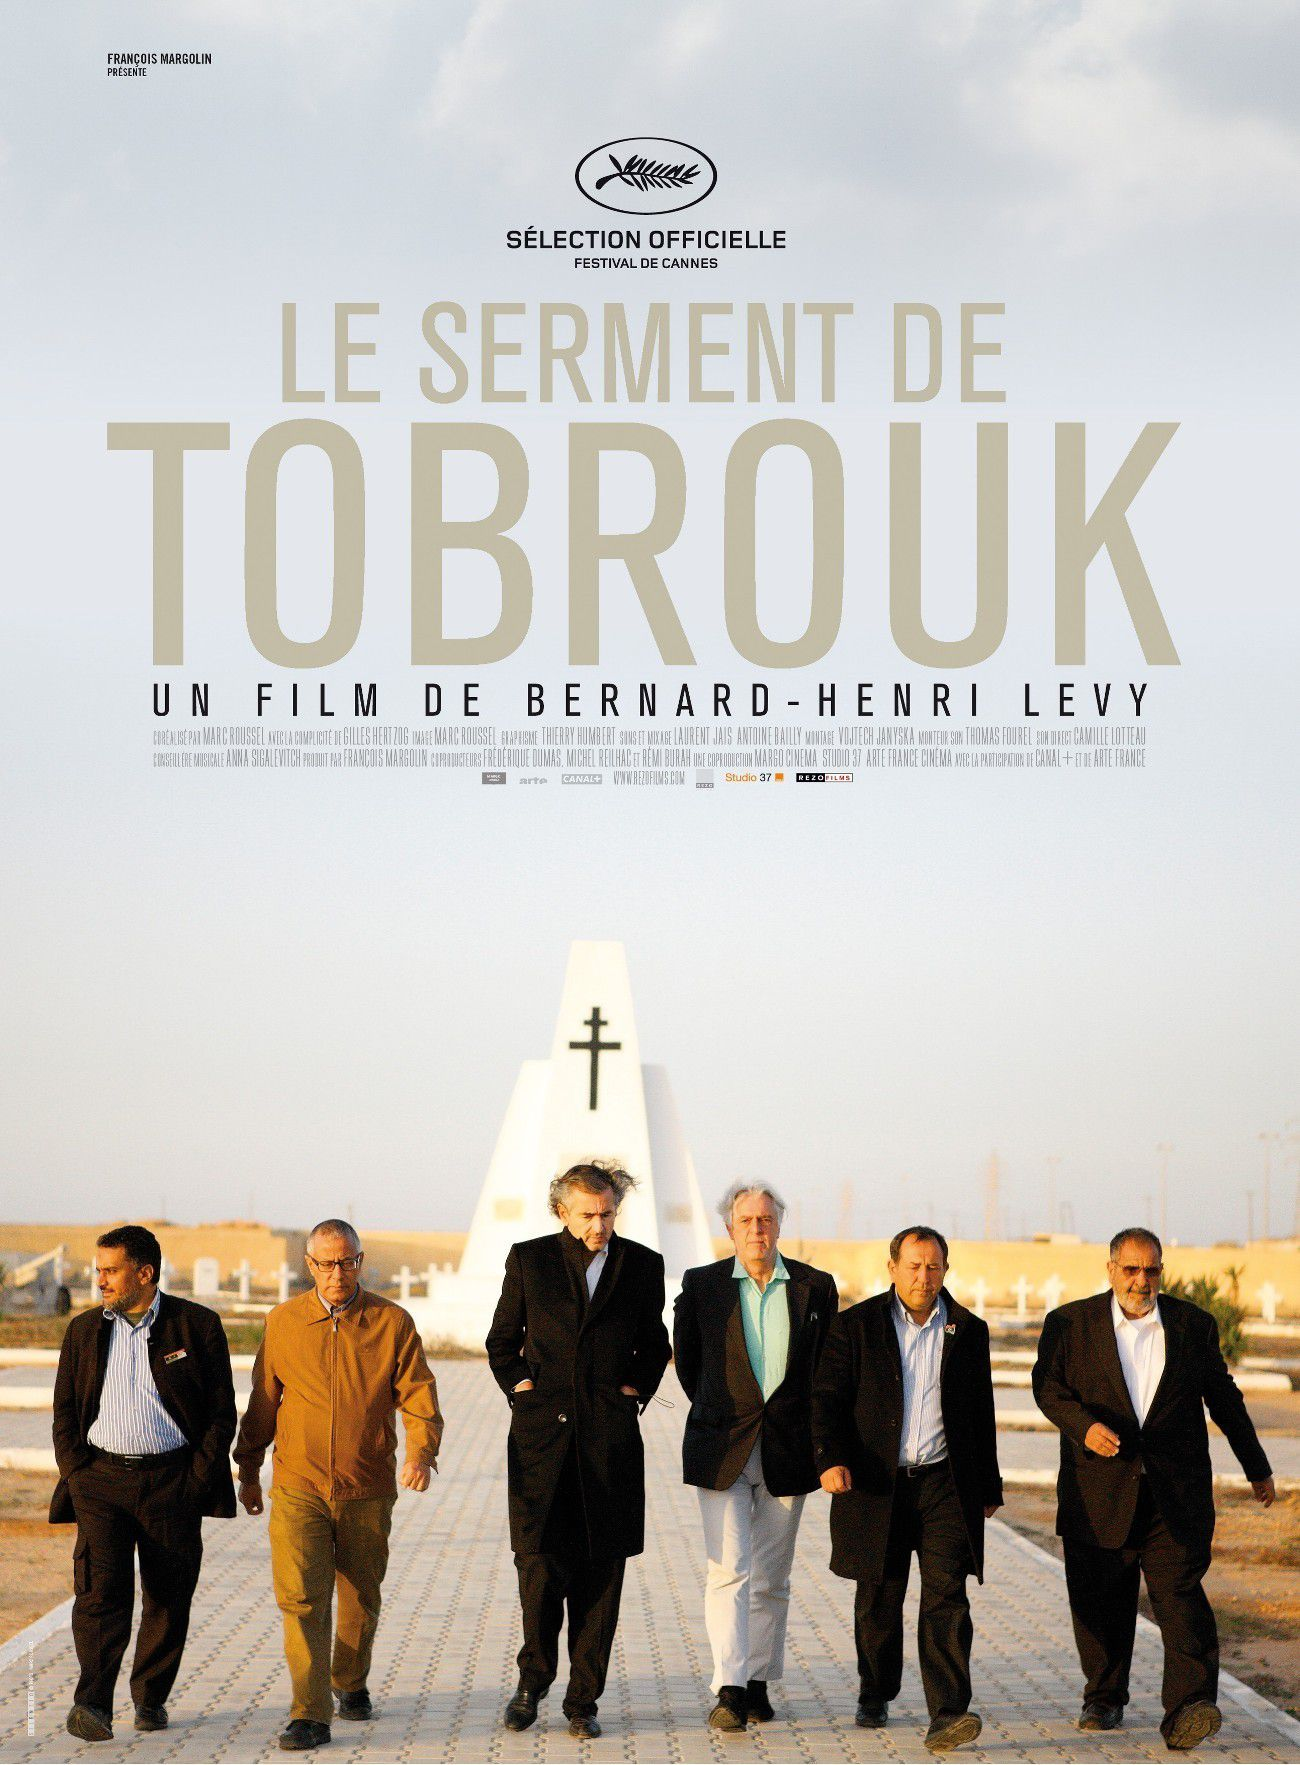 Le Serment de Tobrouk - Documentaire (2012)